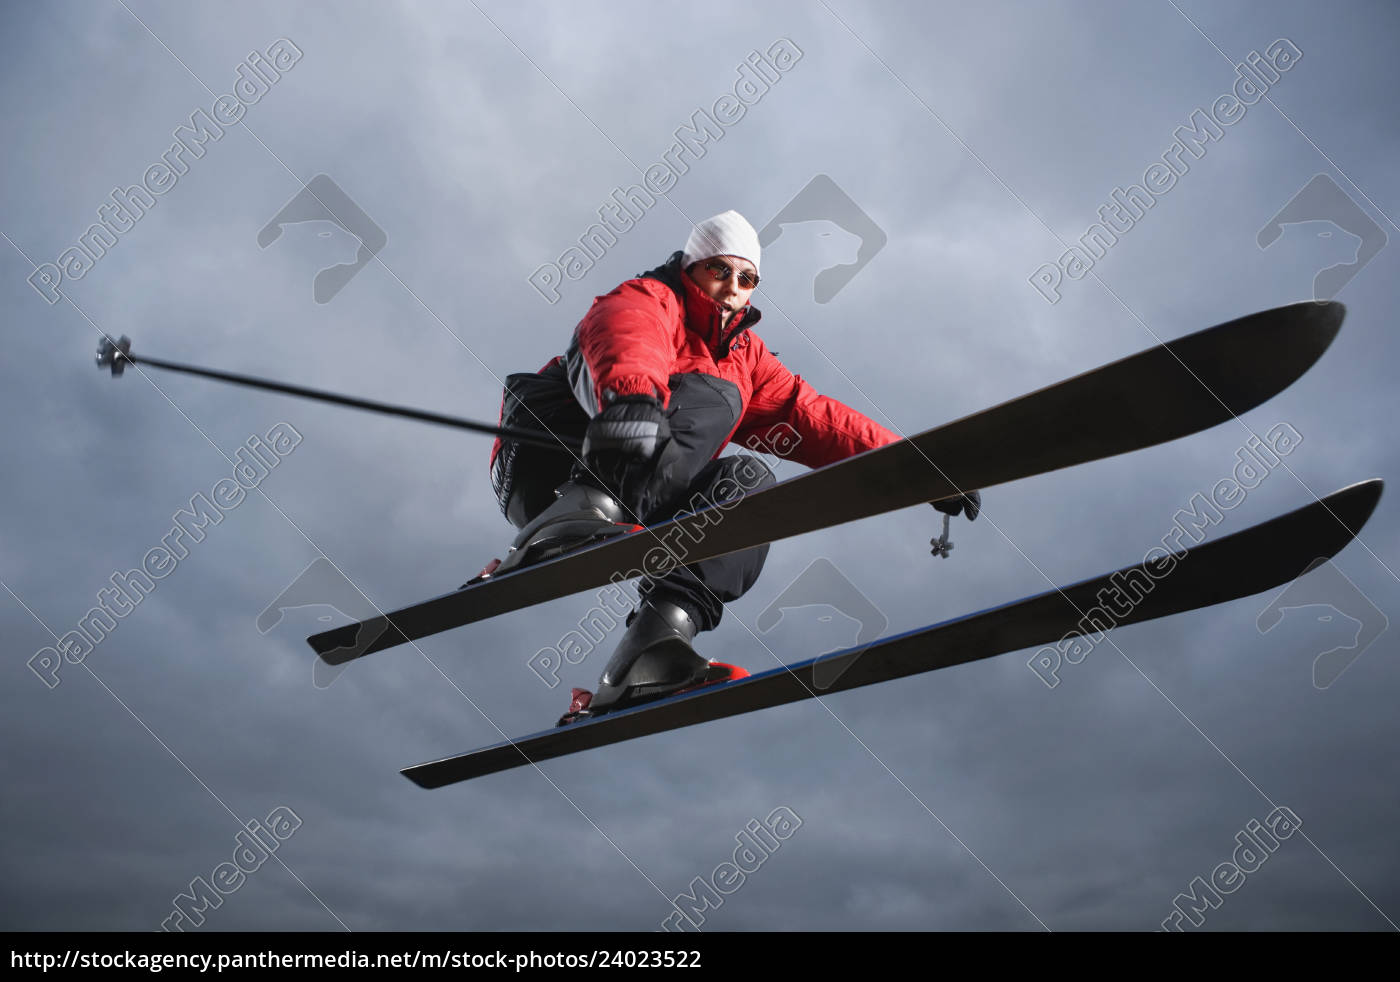 portrait, of, downhill, skier, in, mid-air - 24023522